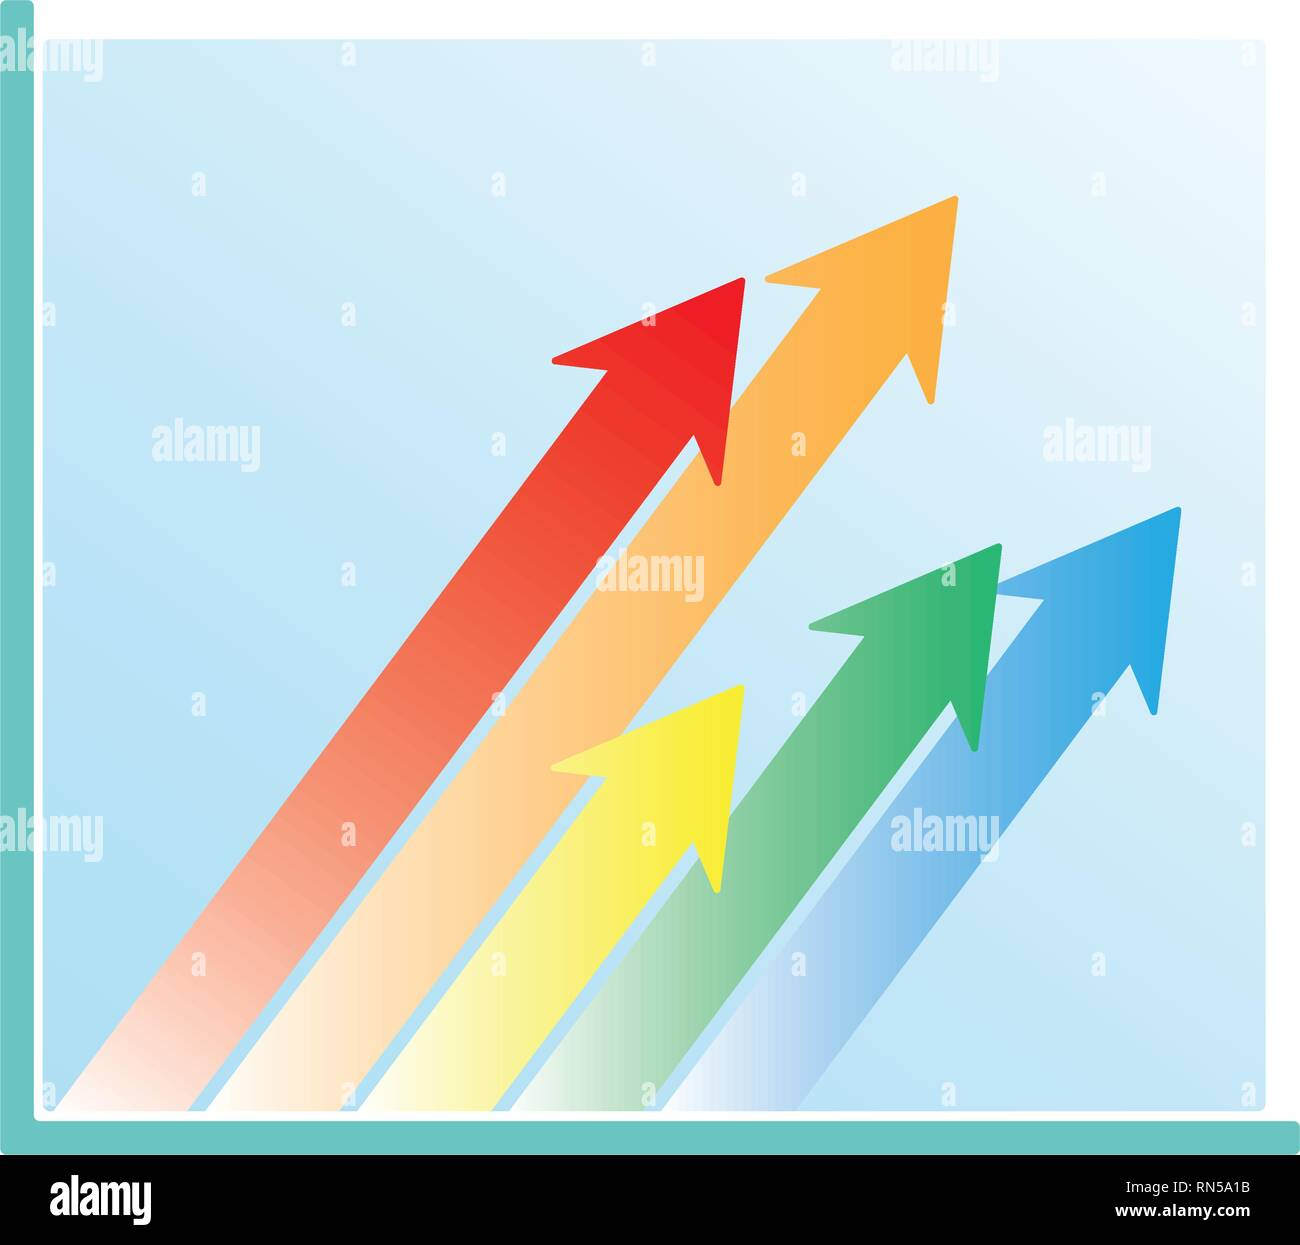 Business Growth Chart Oblique Arrows - Stock Image